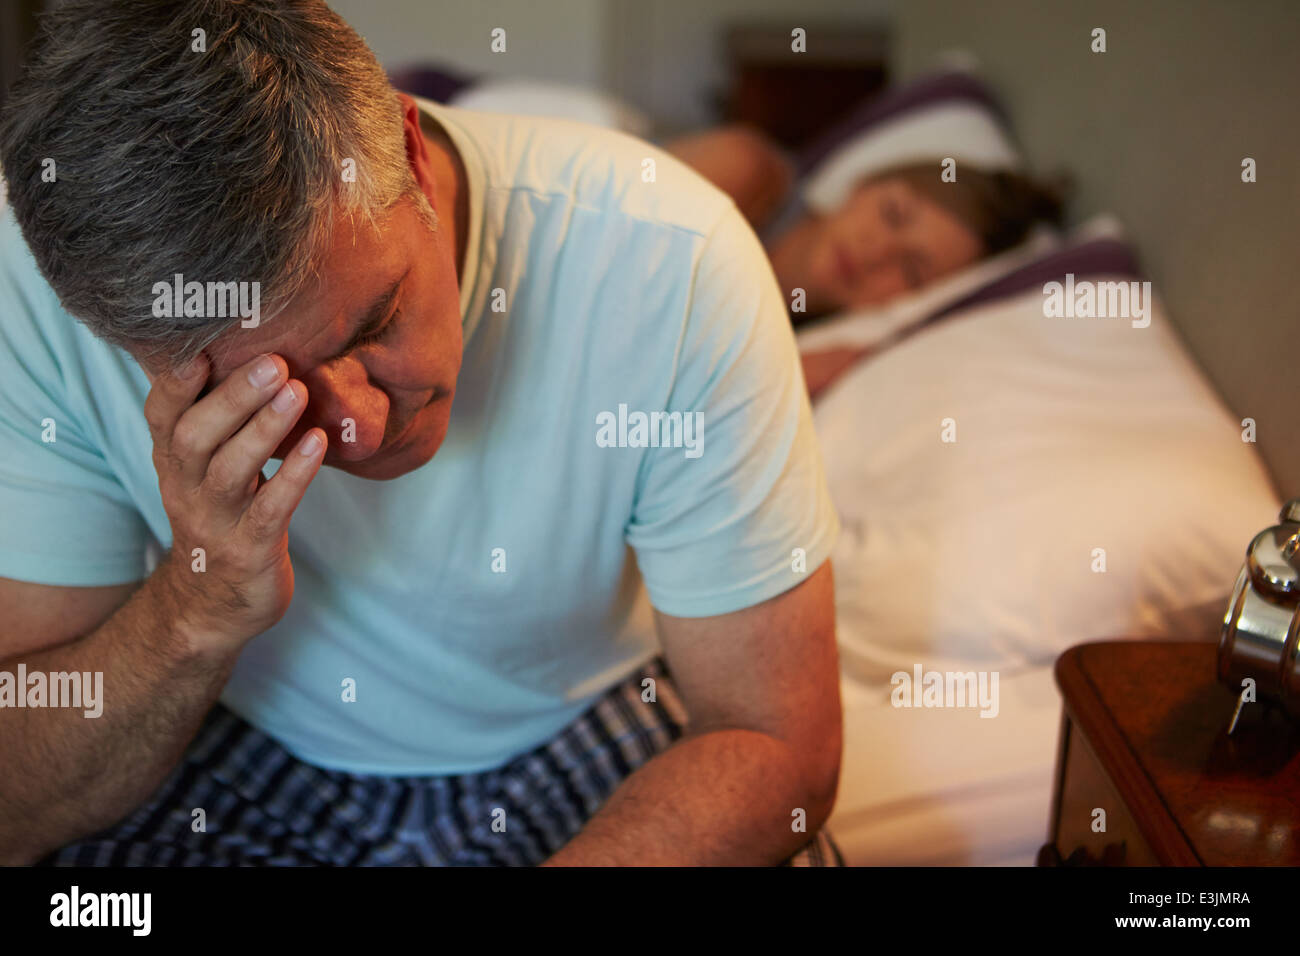 Man Awake In Bed Suffering With Insomnia - Stock Image